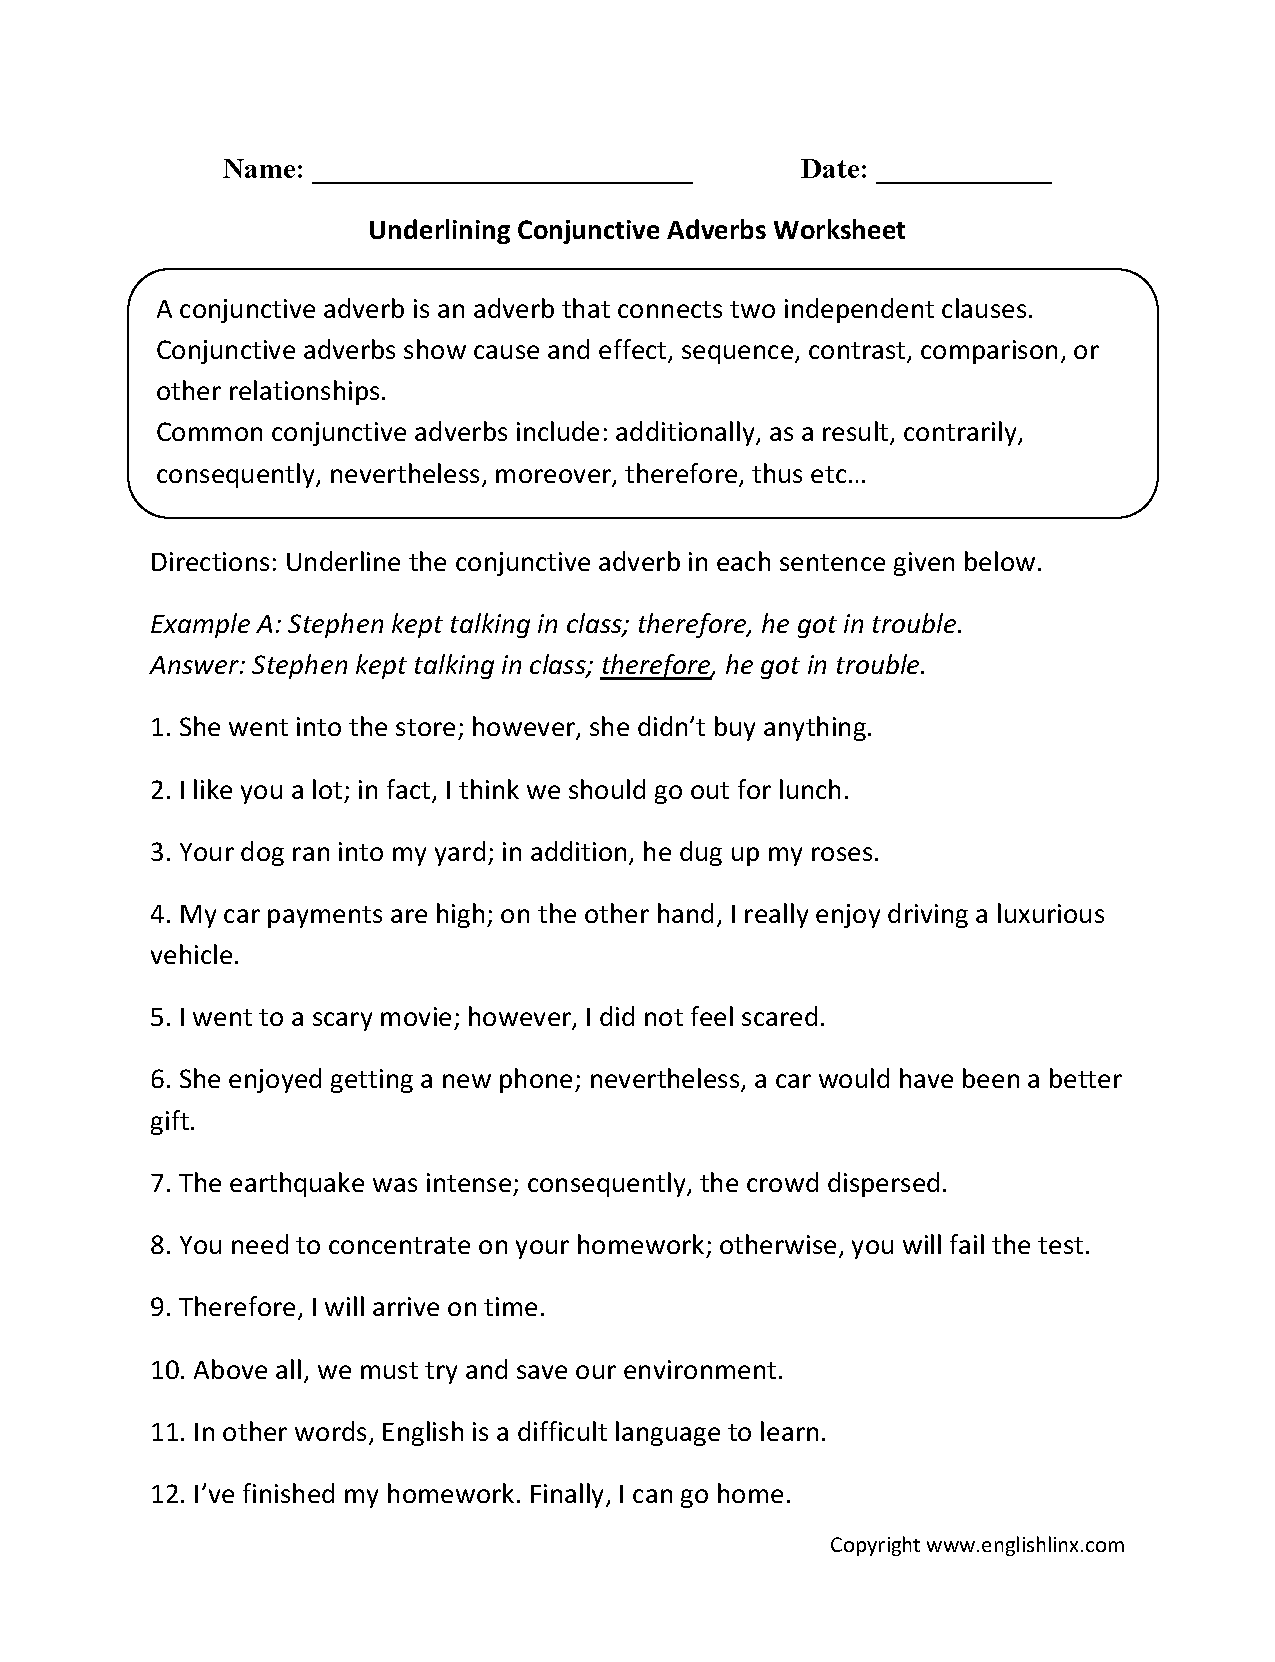 Weirdmailus  Personable Englishlinxcom  Conjunctions Worksheets With Marvelous Worksheet With Appealing Free Worksheets For Nd Grade Math Also Wetlands Worksheets In Addition Punctuation Worksheets For Nd Grade And Shapes In Spanish Worksheet As Well As Free Handwriting Worksheets For Preschool Additionally Simple Stoichiometry Worksheet From Englishlinxcom With Weirdmailus  Marvelous Englishlinxcom  Conjunctions Worksheets With Appealing Worksheet And Personable Free Worksheets For Nd Grade Math Also Wetlands Worksheets In Addition Punctuation Worksheets For Nd Grade From Englishlinxcom